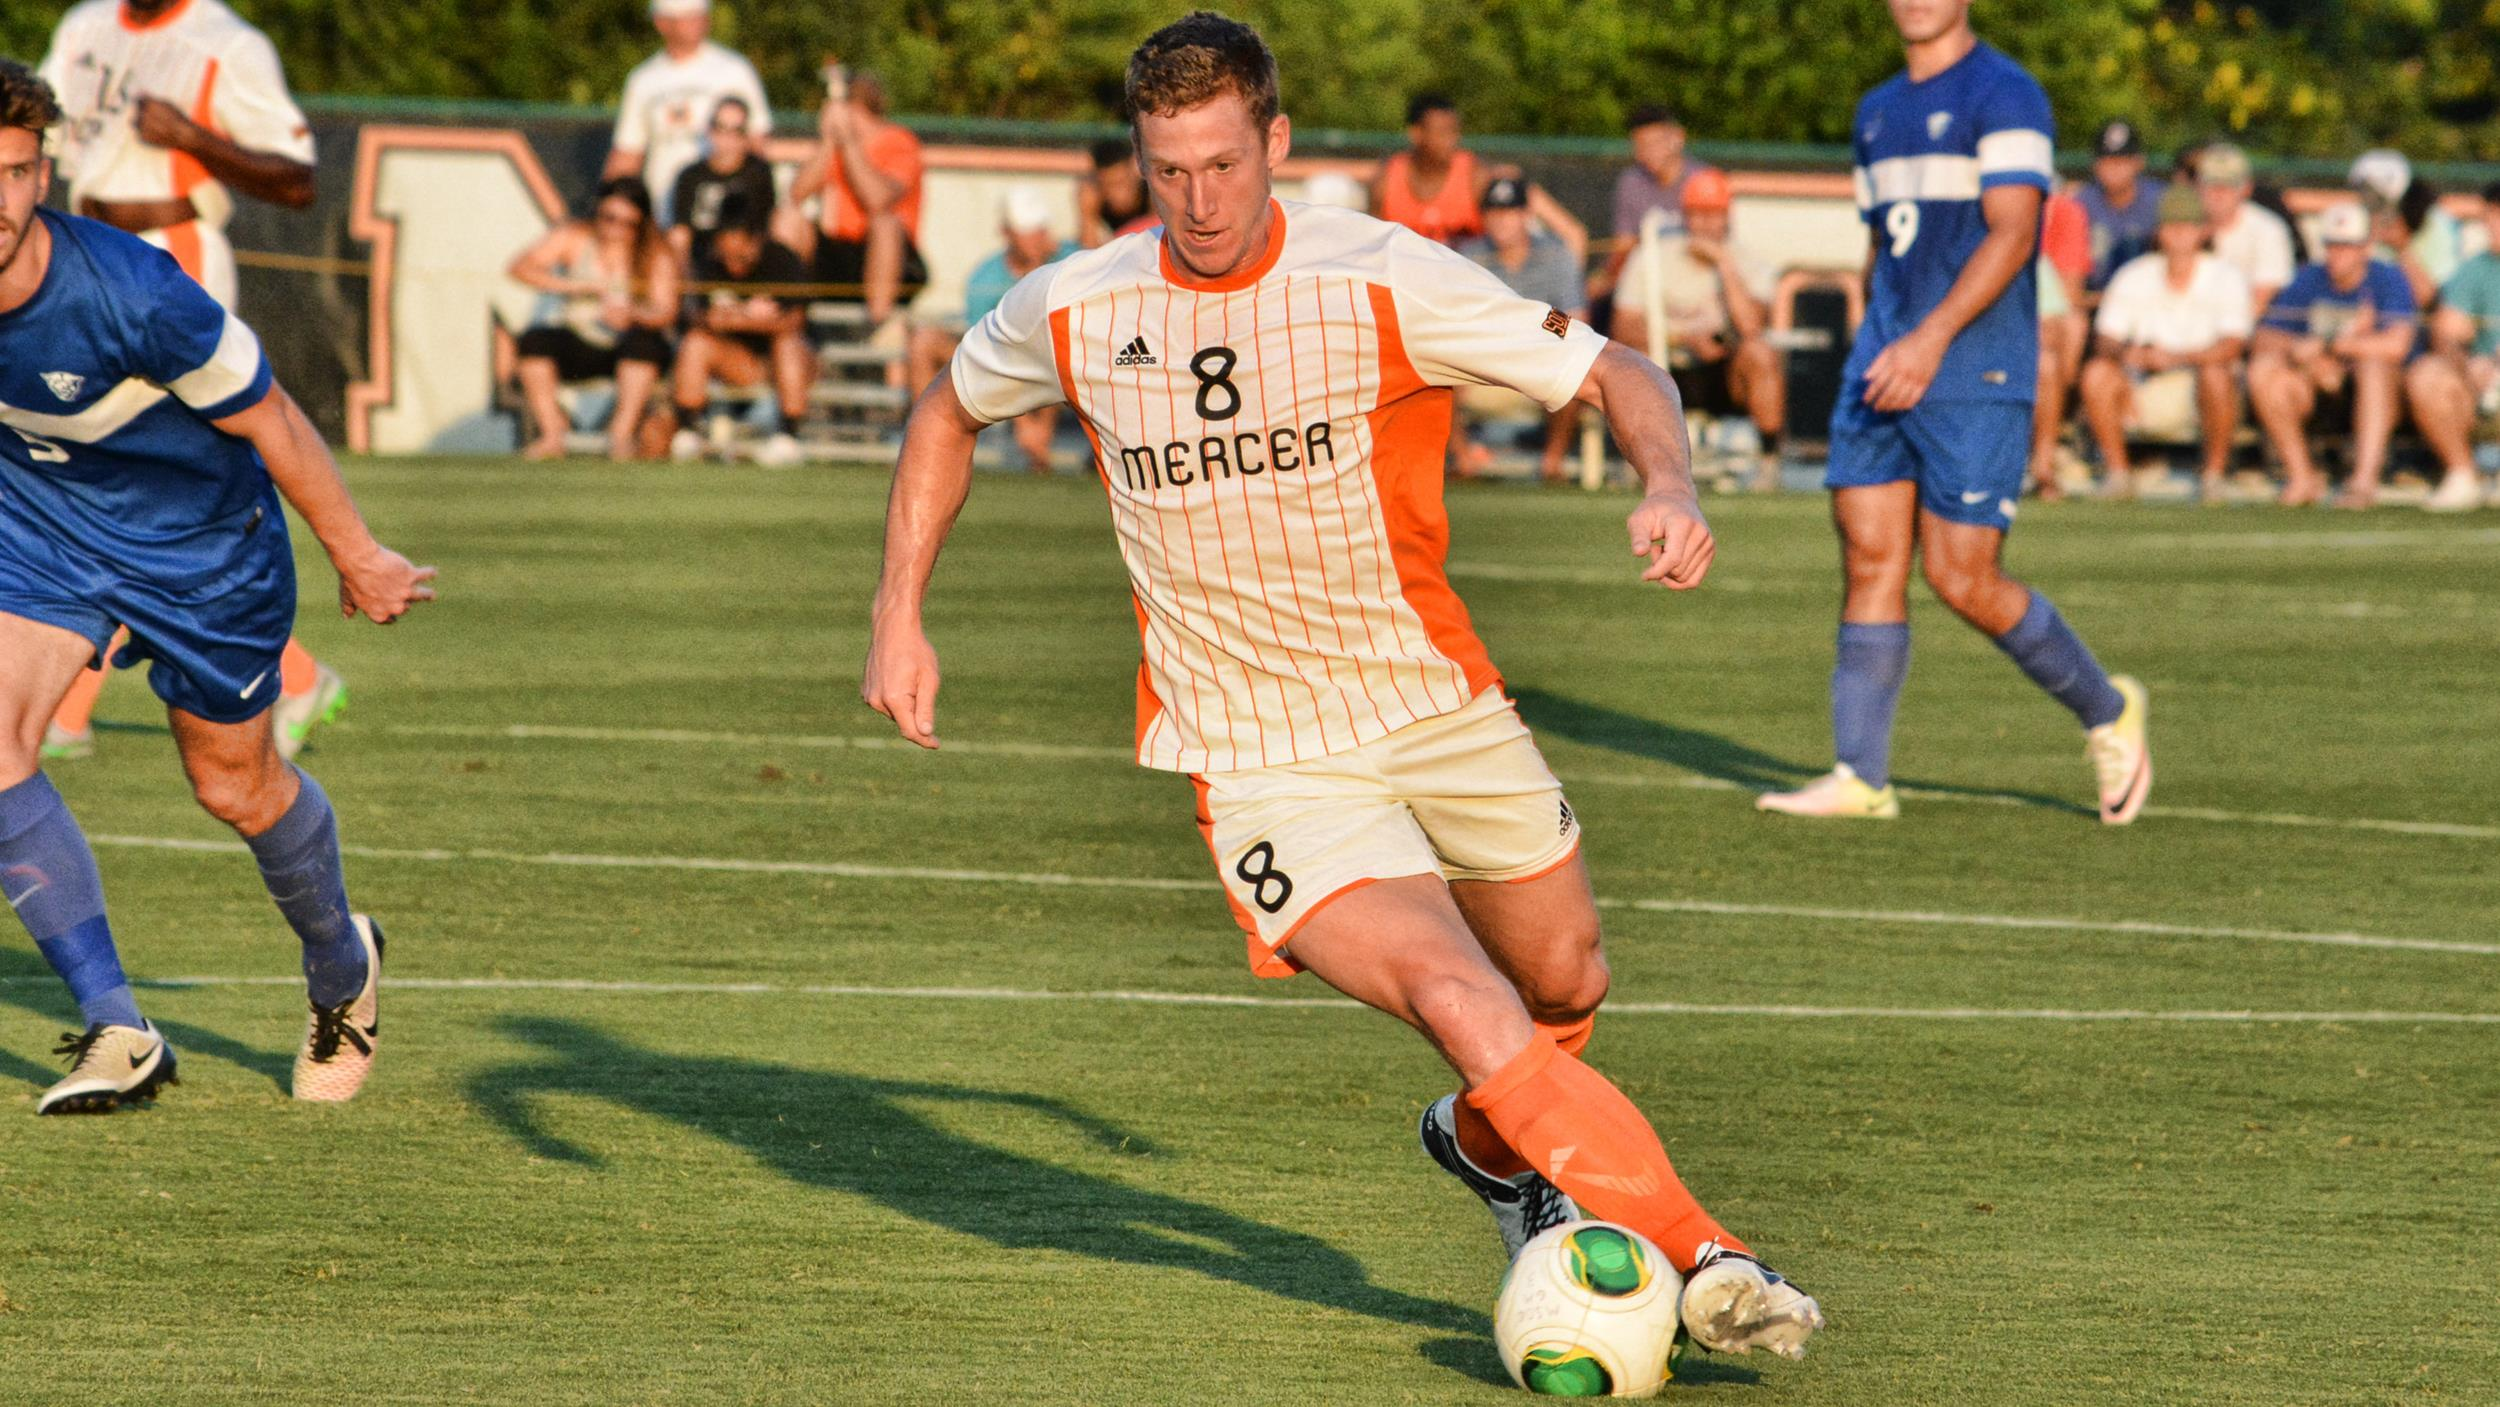 12 Goals and 9 Assists as a Center back for Mercer